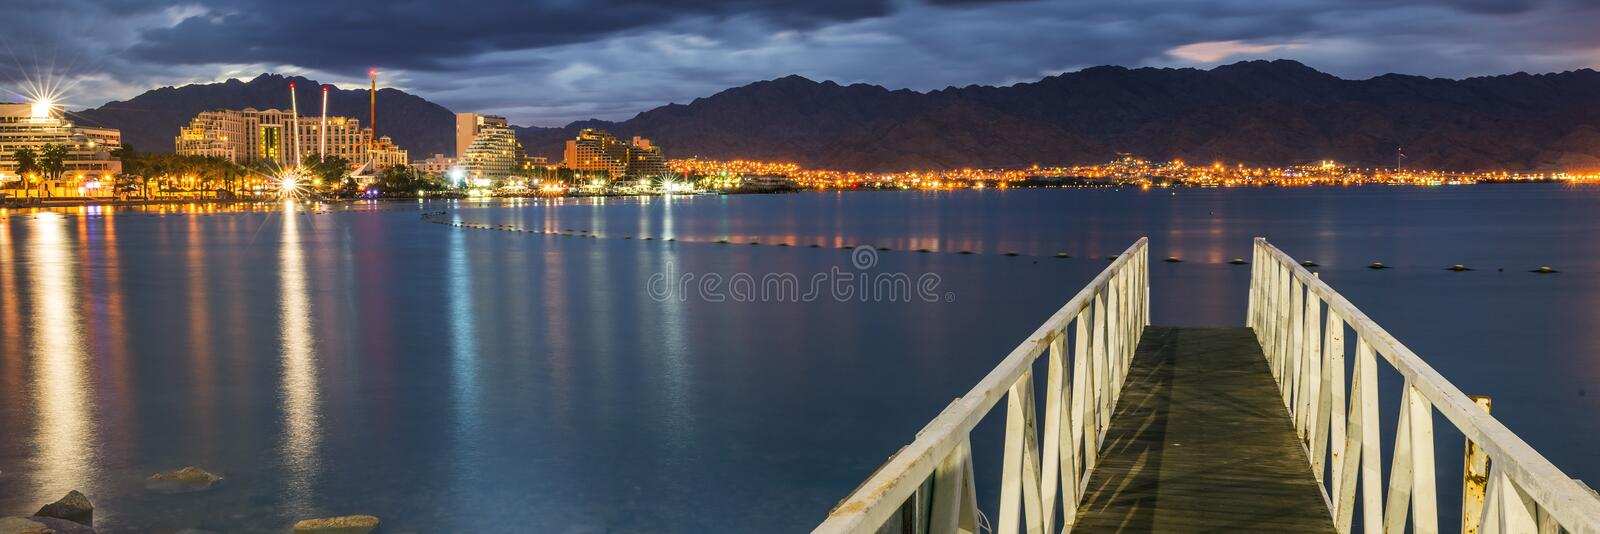 Central beach of Eilat - famous resort city in Israel stock photography